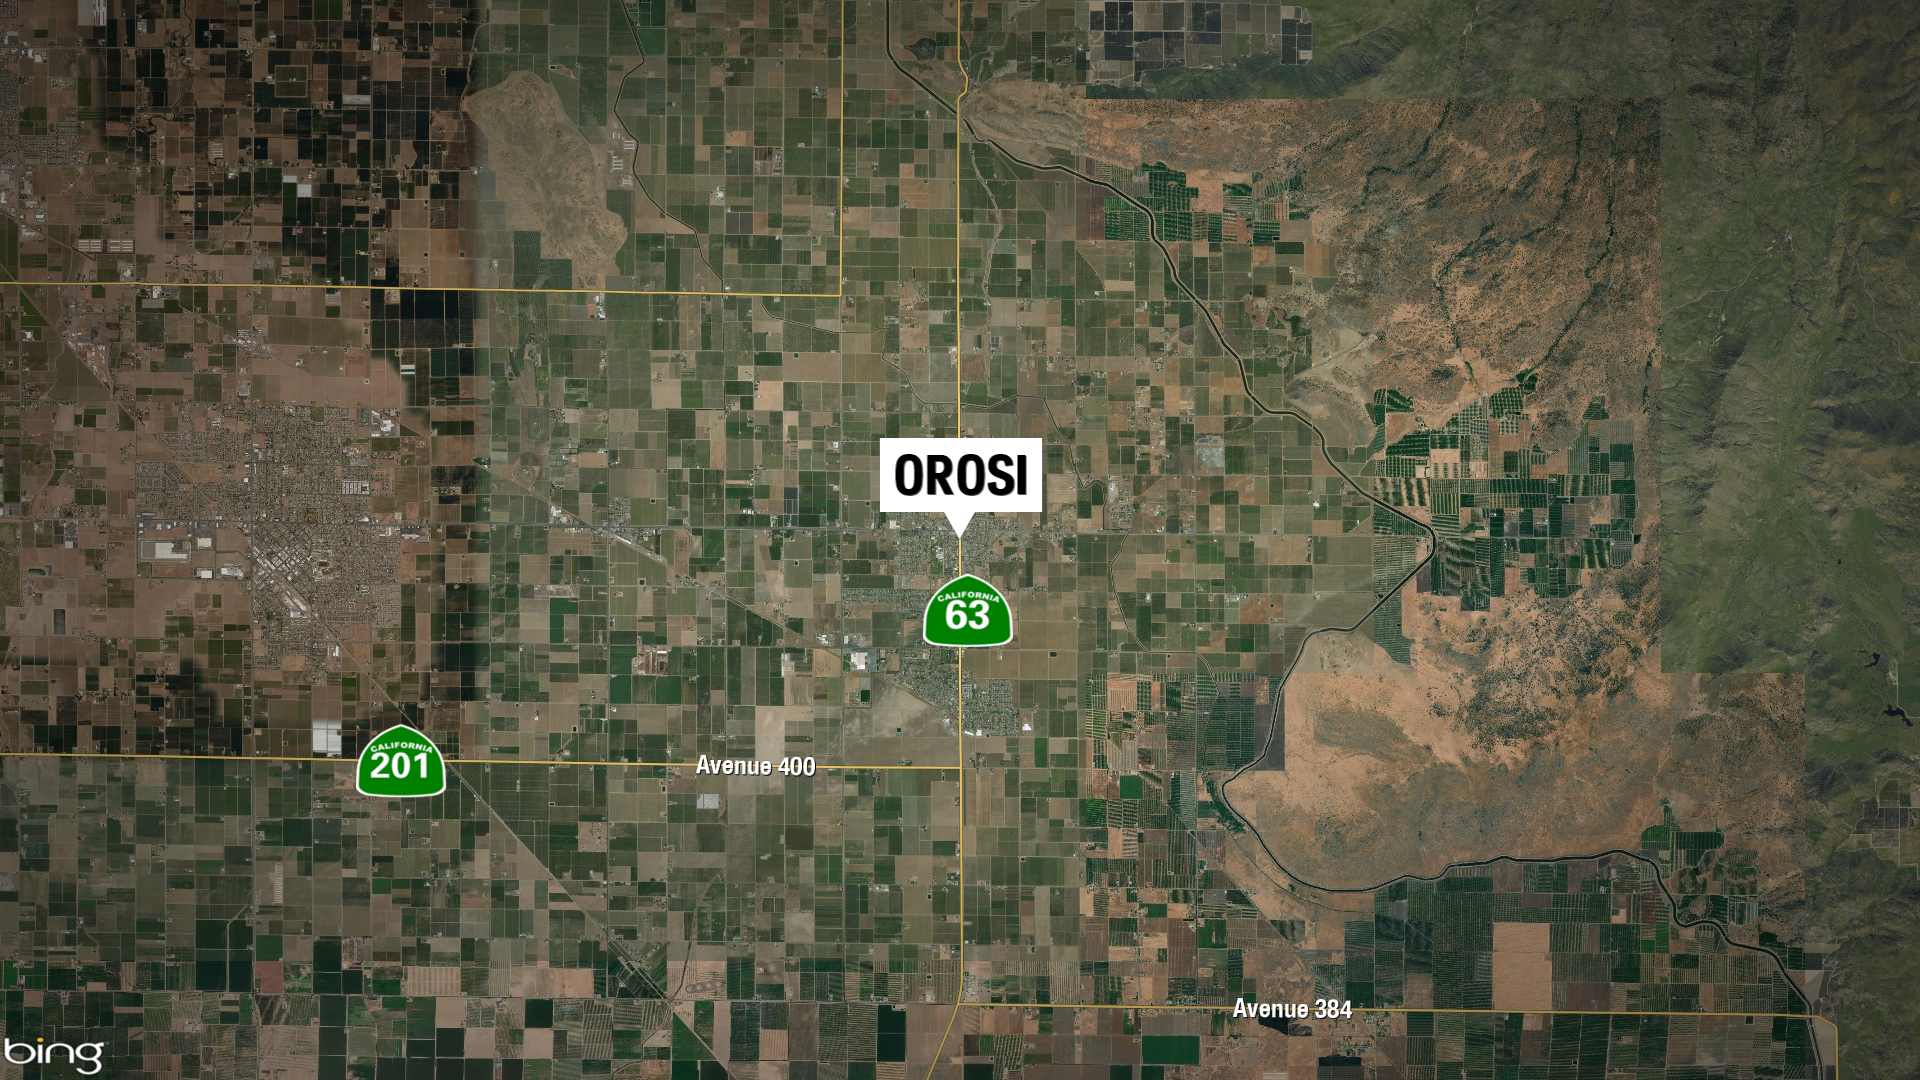 5-14 OROSI CHILD BURNED STILL MAP